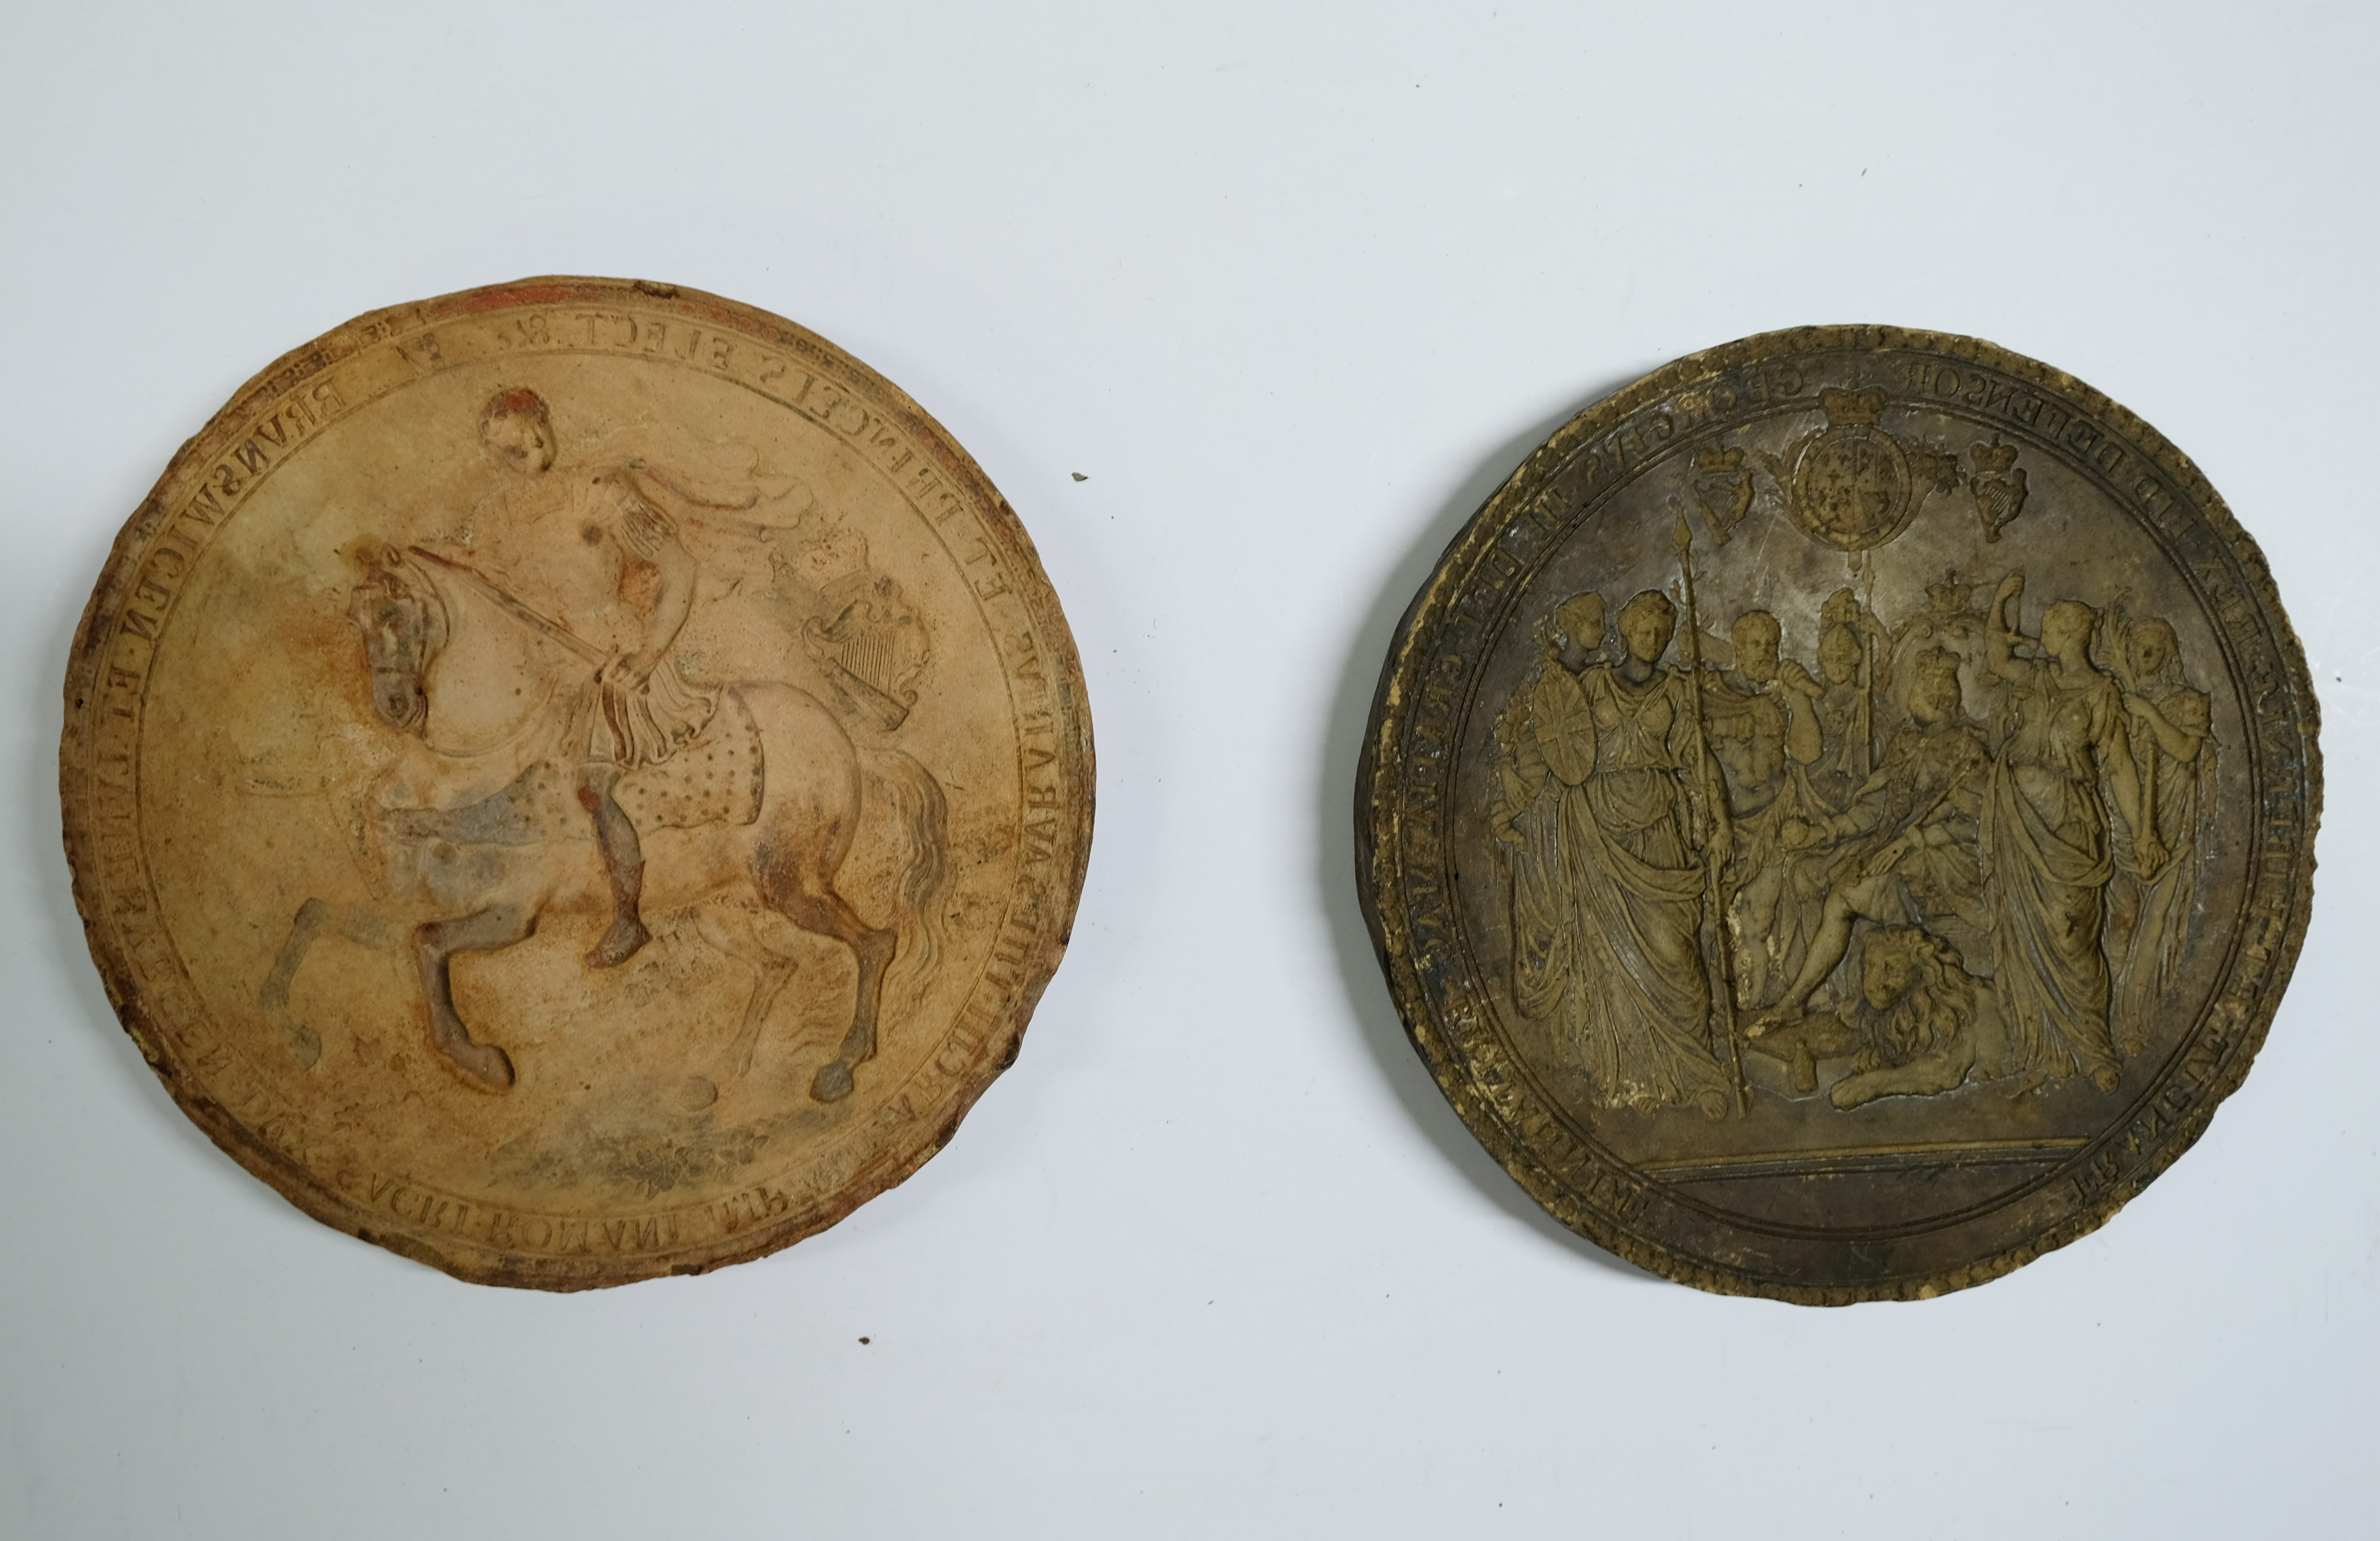 * Great Seal moulds. Plaster cast moulds of the Great Seal of George III, (reign 1760-1820) - Image 3 of 4